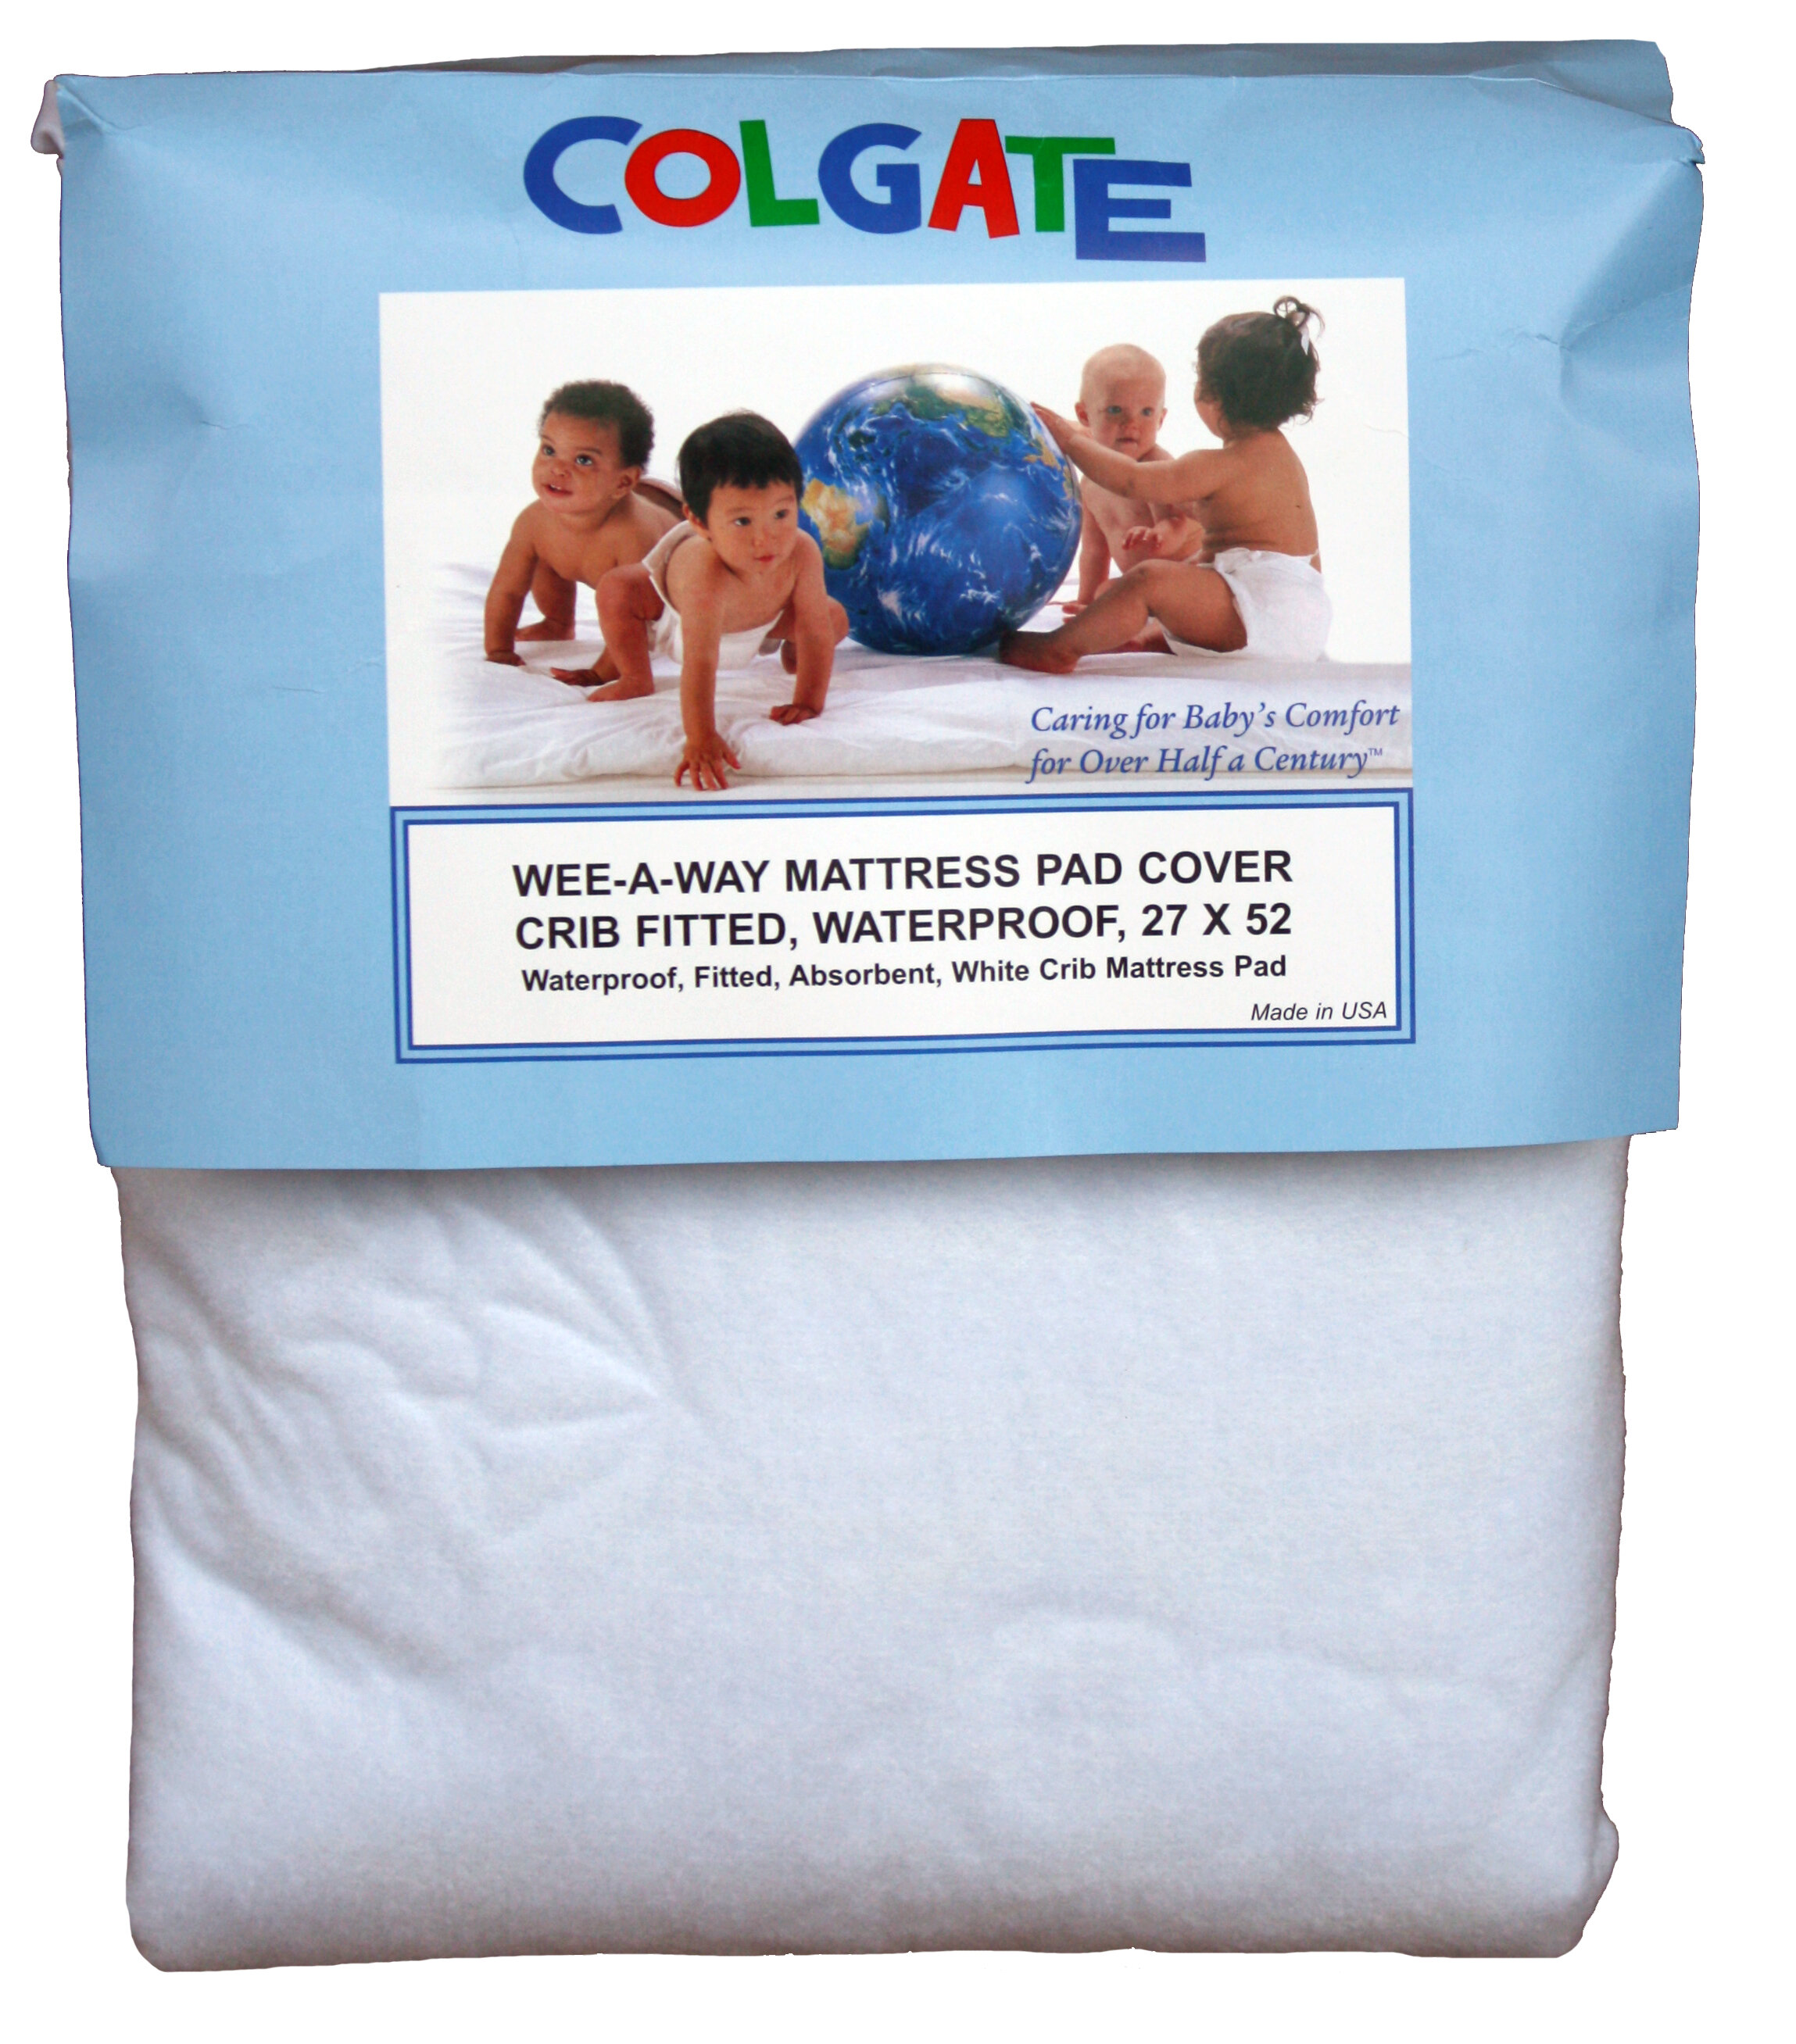 colgate wee-a-way waterproof fitted crib mattress cover | wayfair